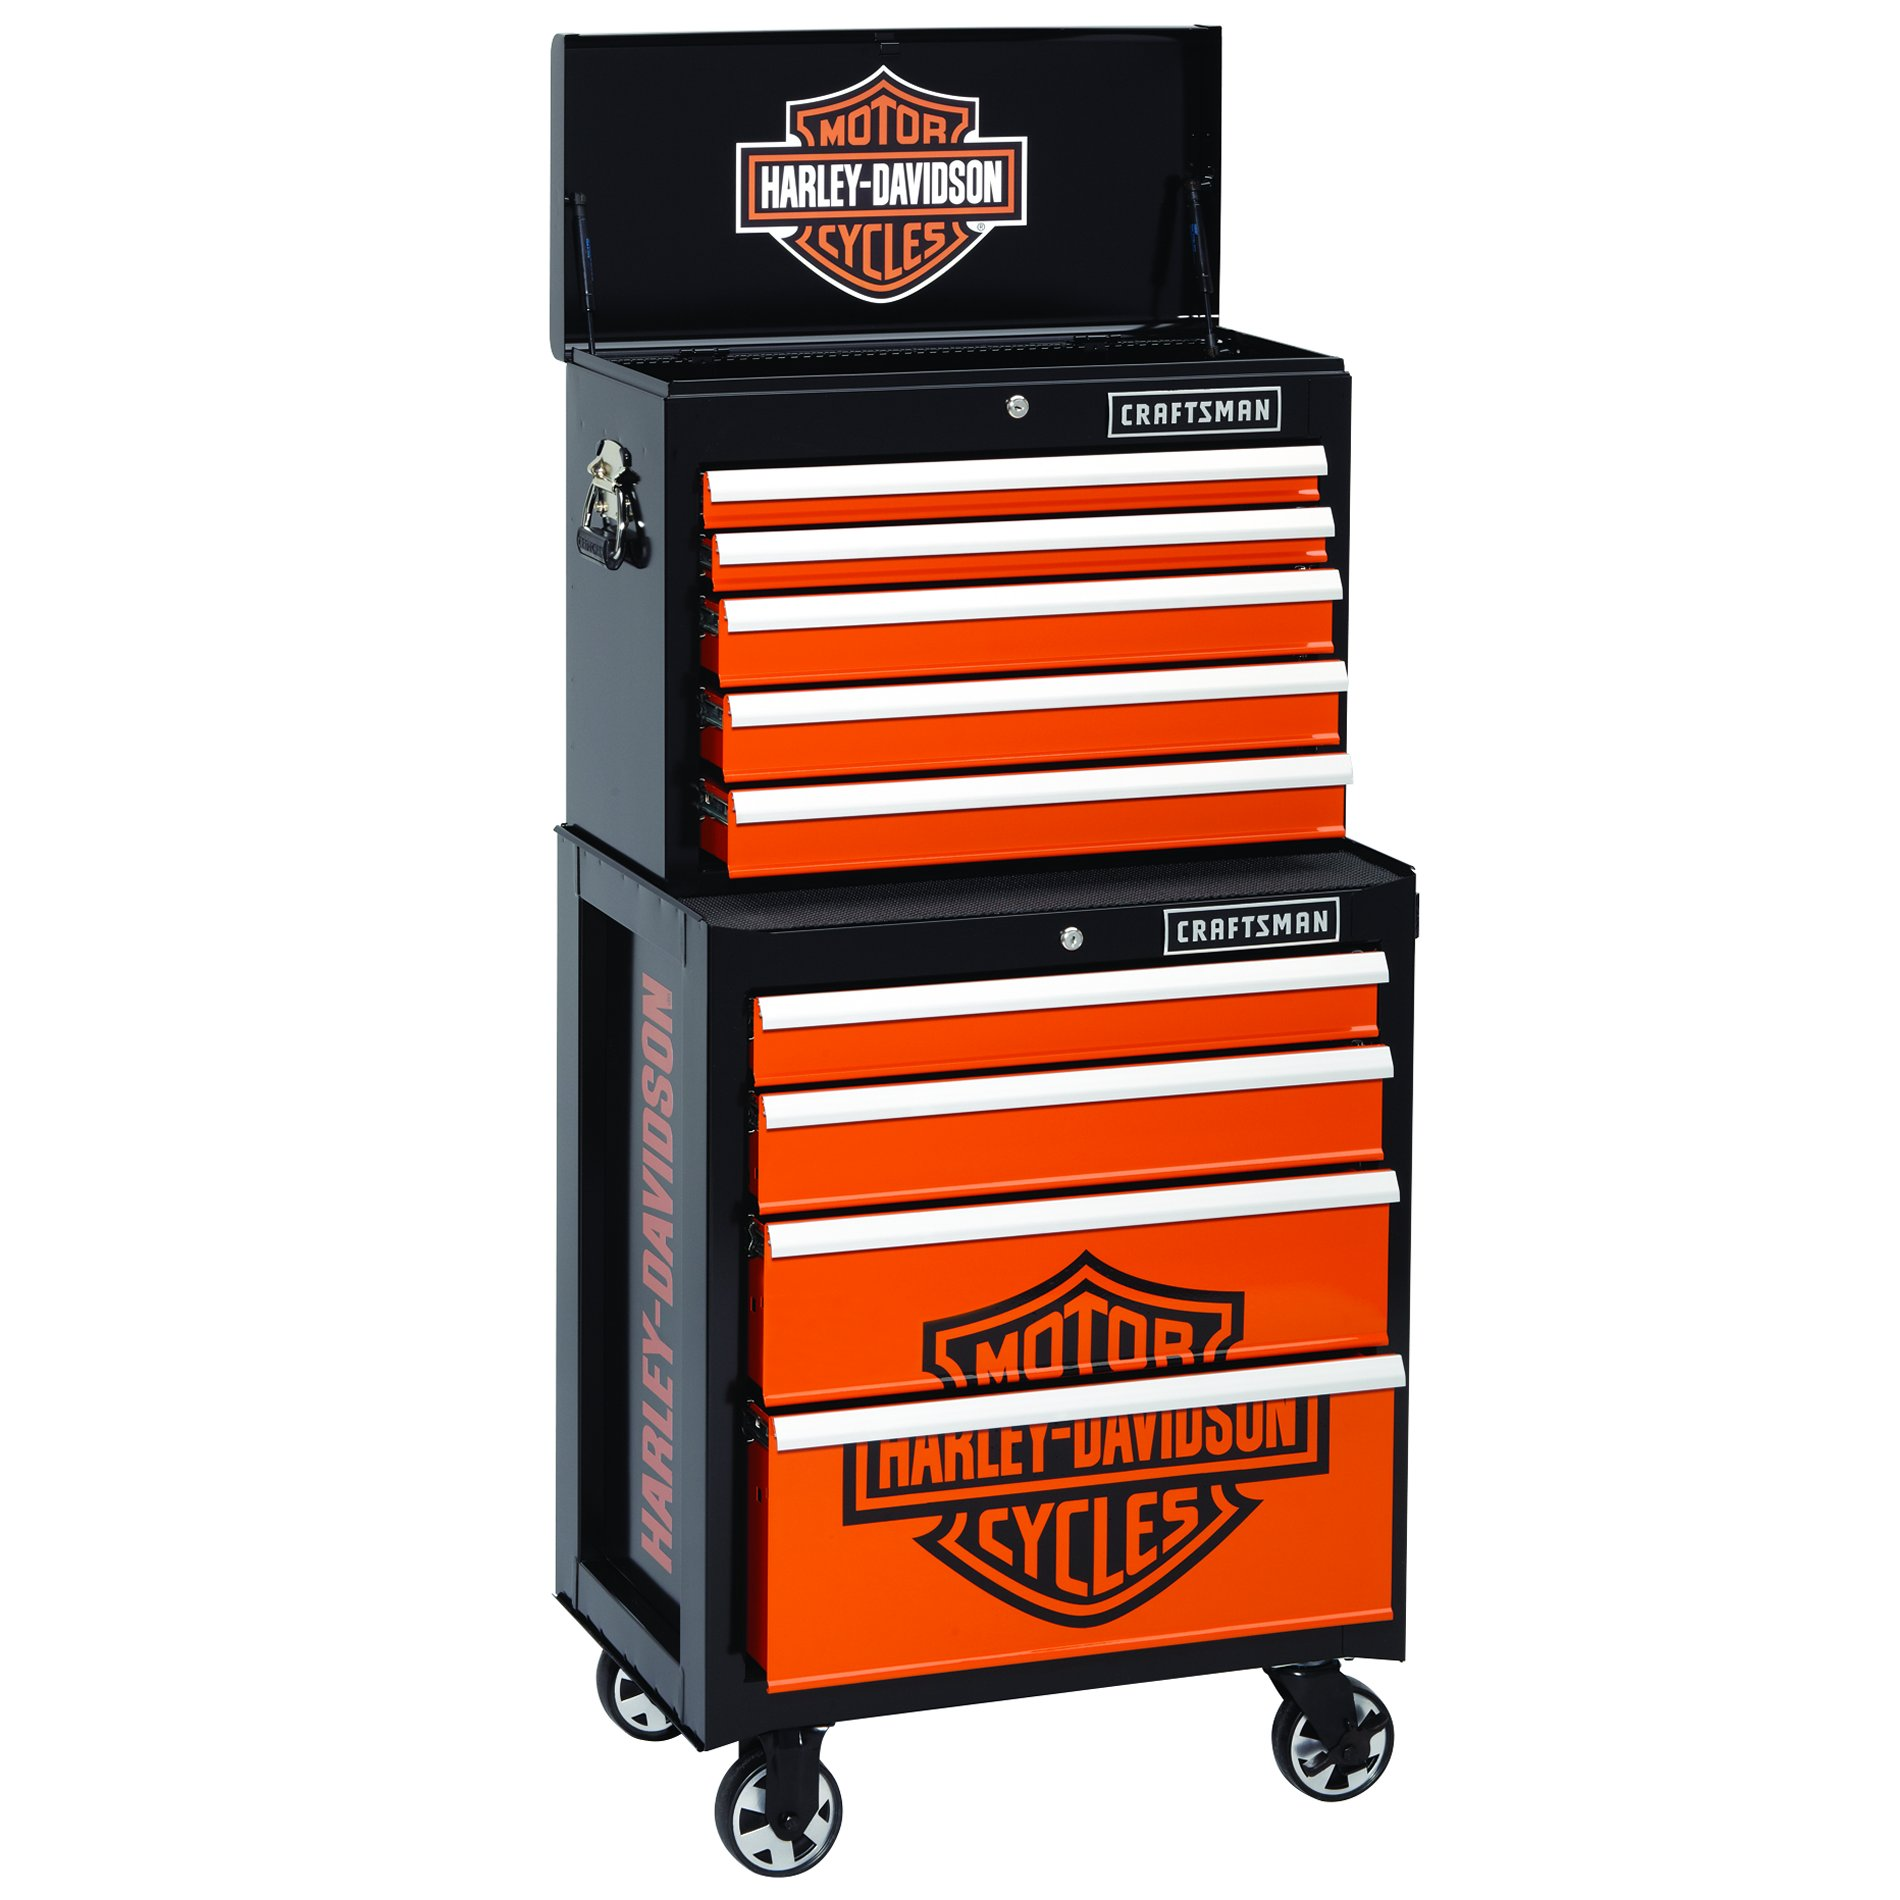 Craftsman® and Harley Davidson® Tool Storage Combination (Items Sold Separately)  sc 1 st  Sears Hometown Stores & Craftsman® and Harley Davidson® Tool Storage Combination (Items Sold ...